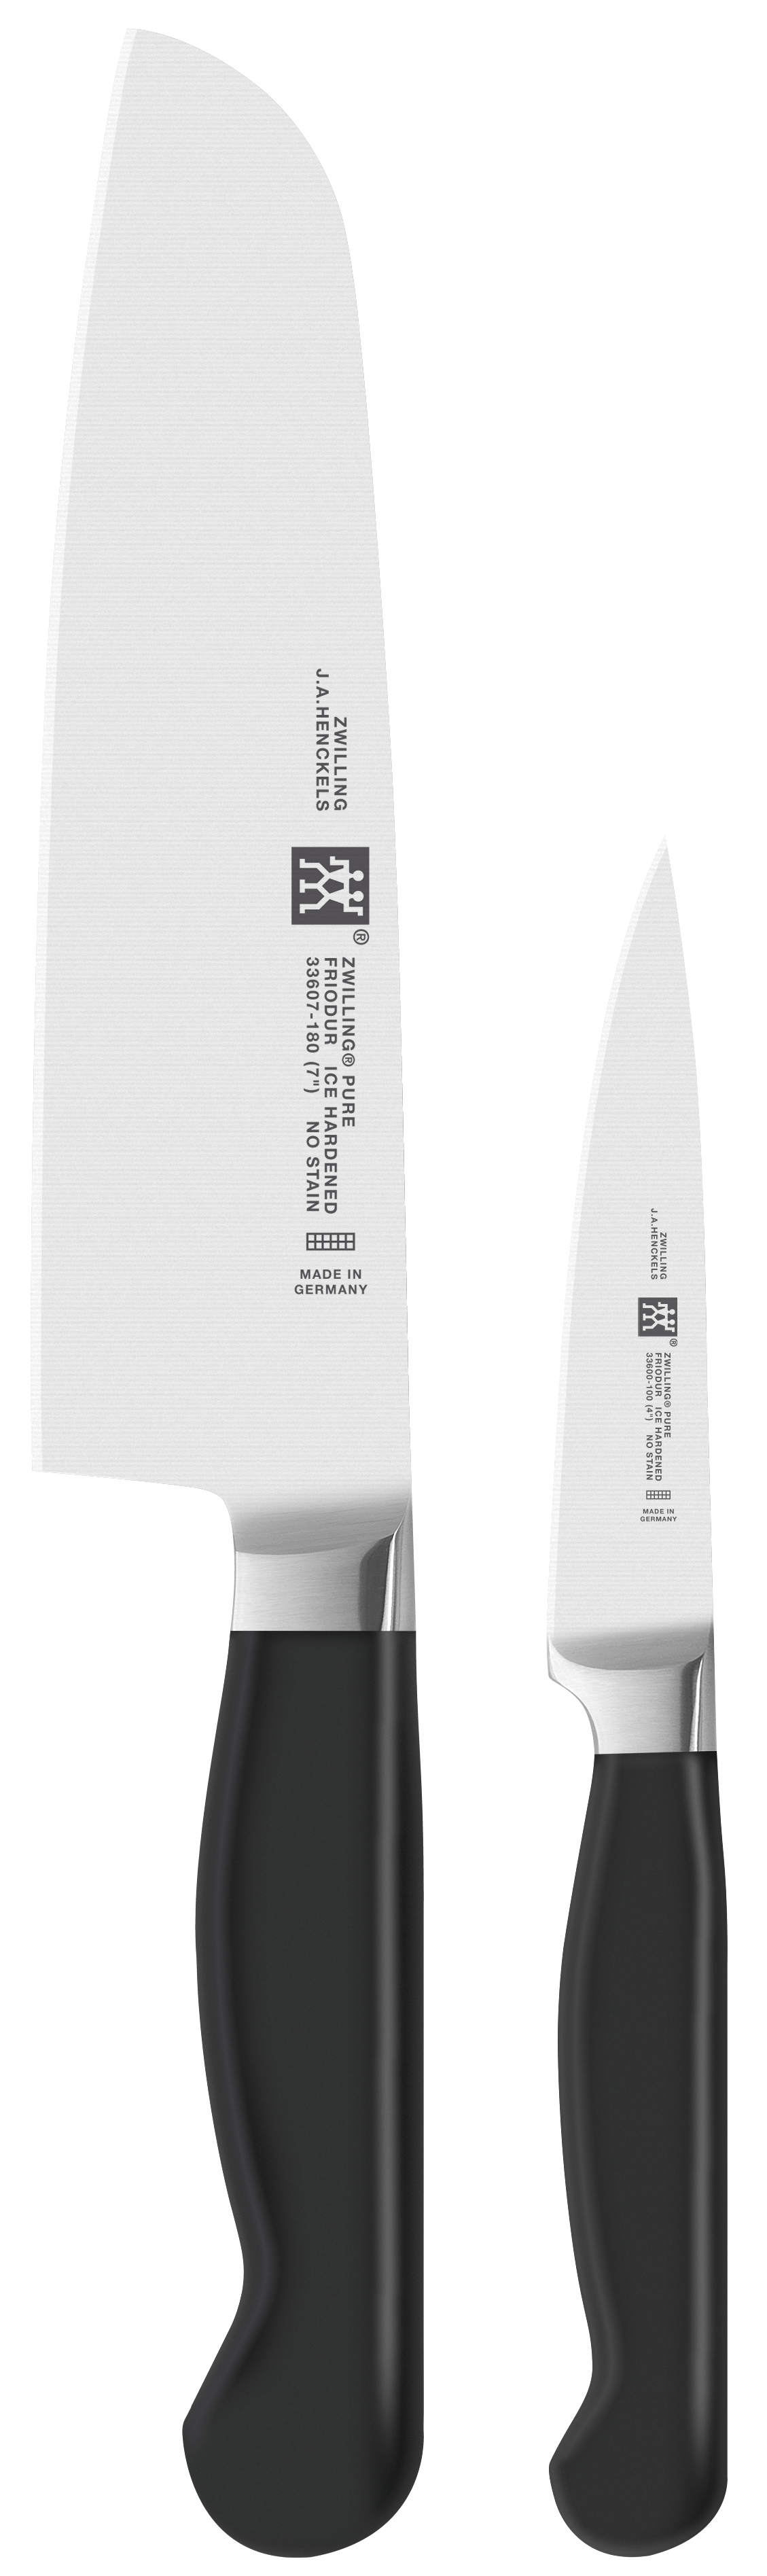 Zwilling: Pure Messerset, 2-tlg.